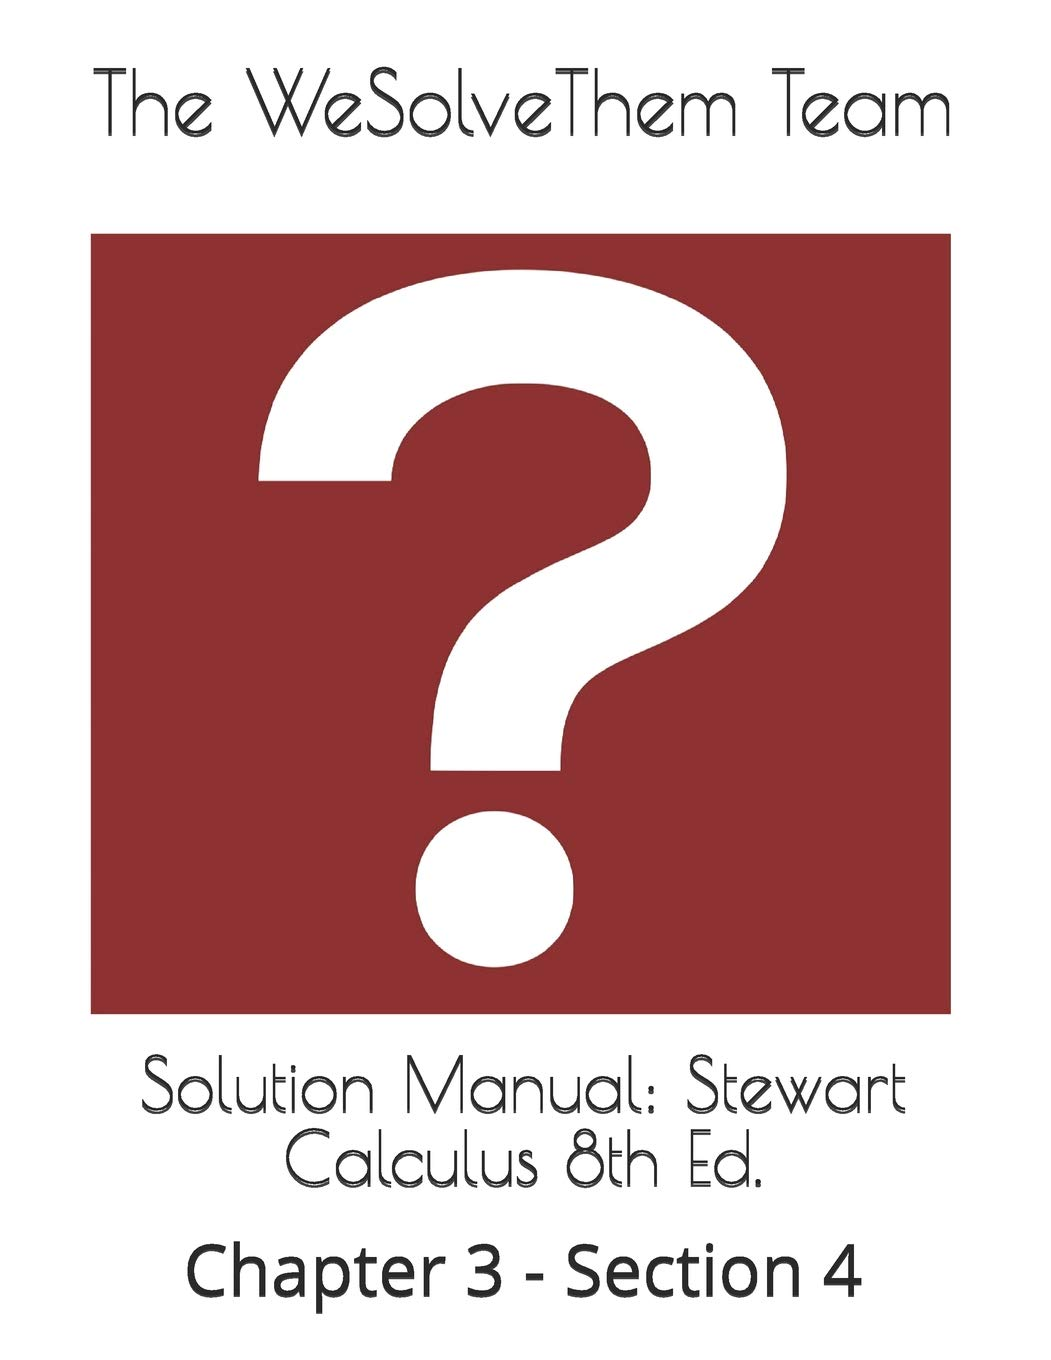 Solution Manual: Stewart Calculus 8th Ed.: Chapter 3 - Section 4 Paperback  – Aug 13 2018. by The WeSolveThem Team ...